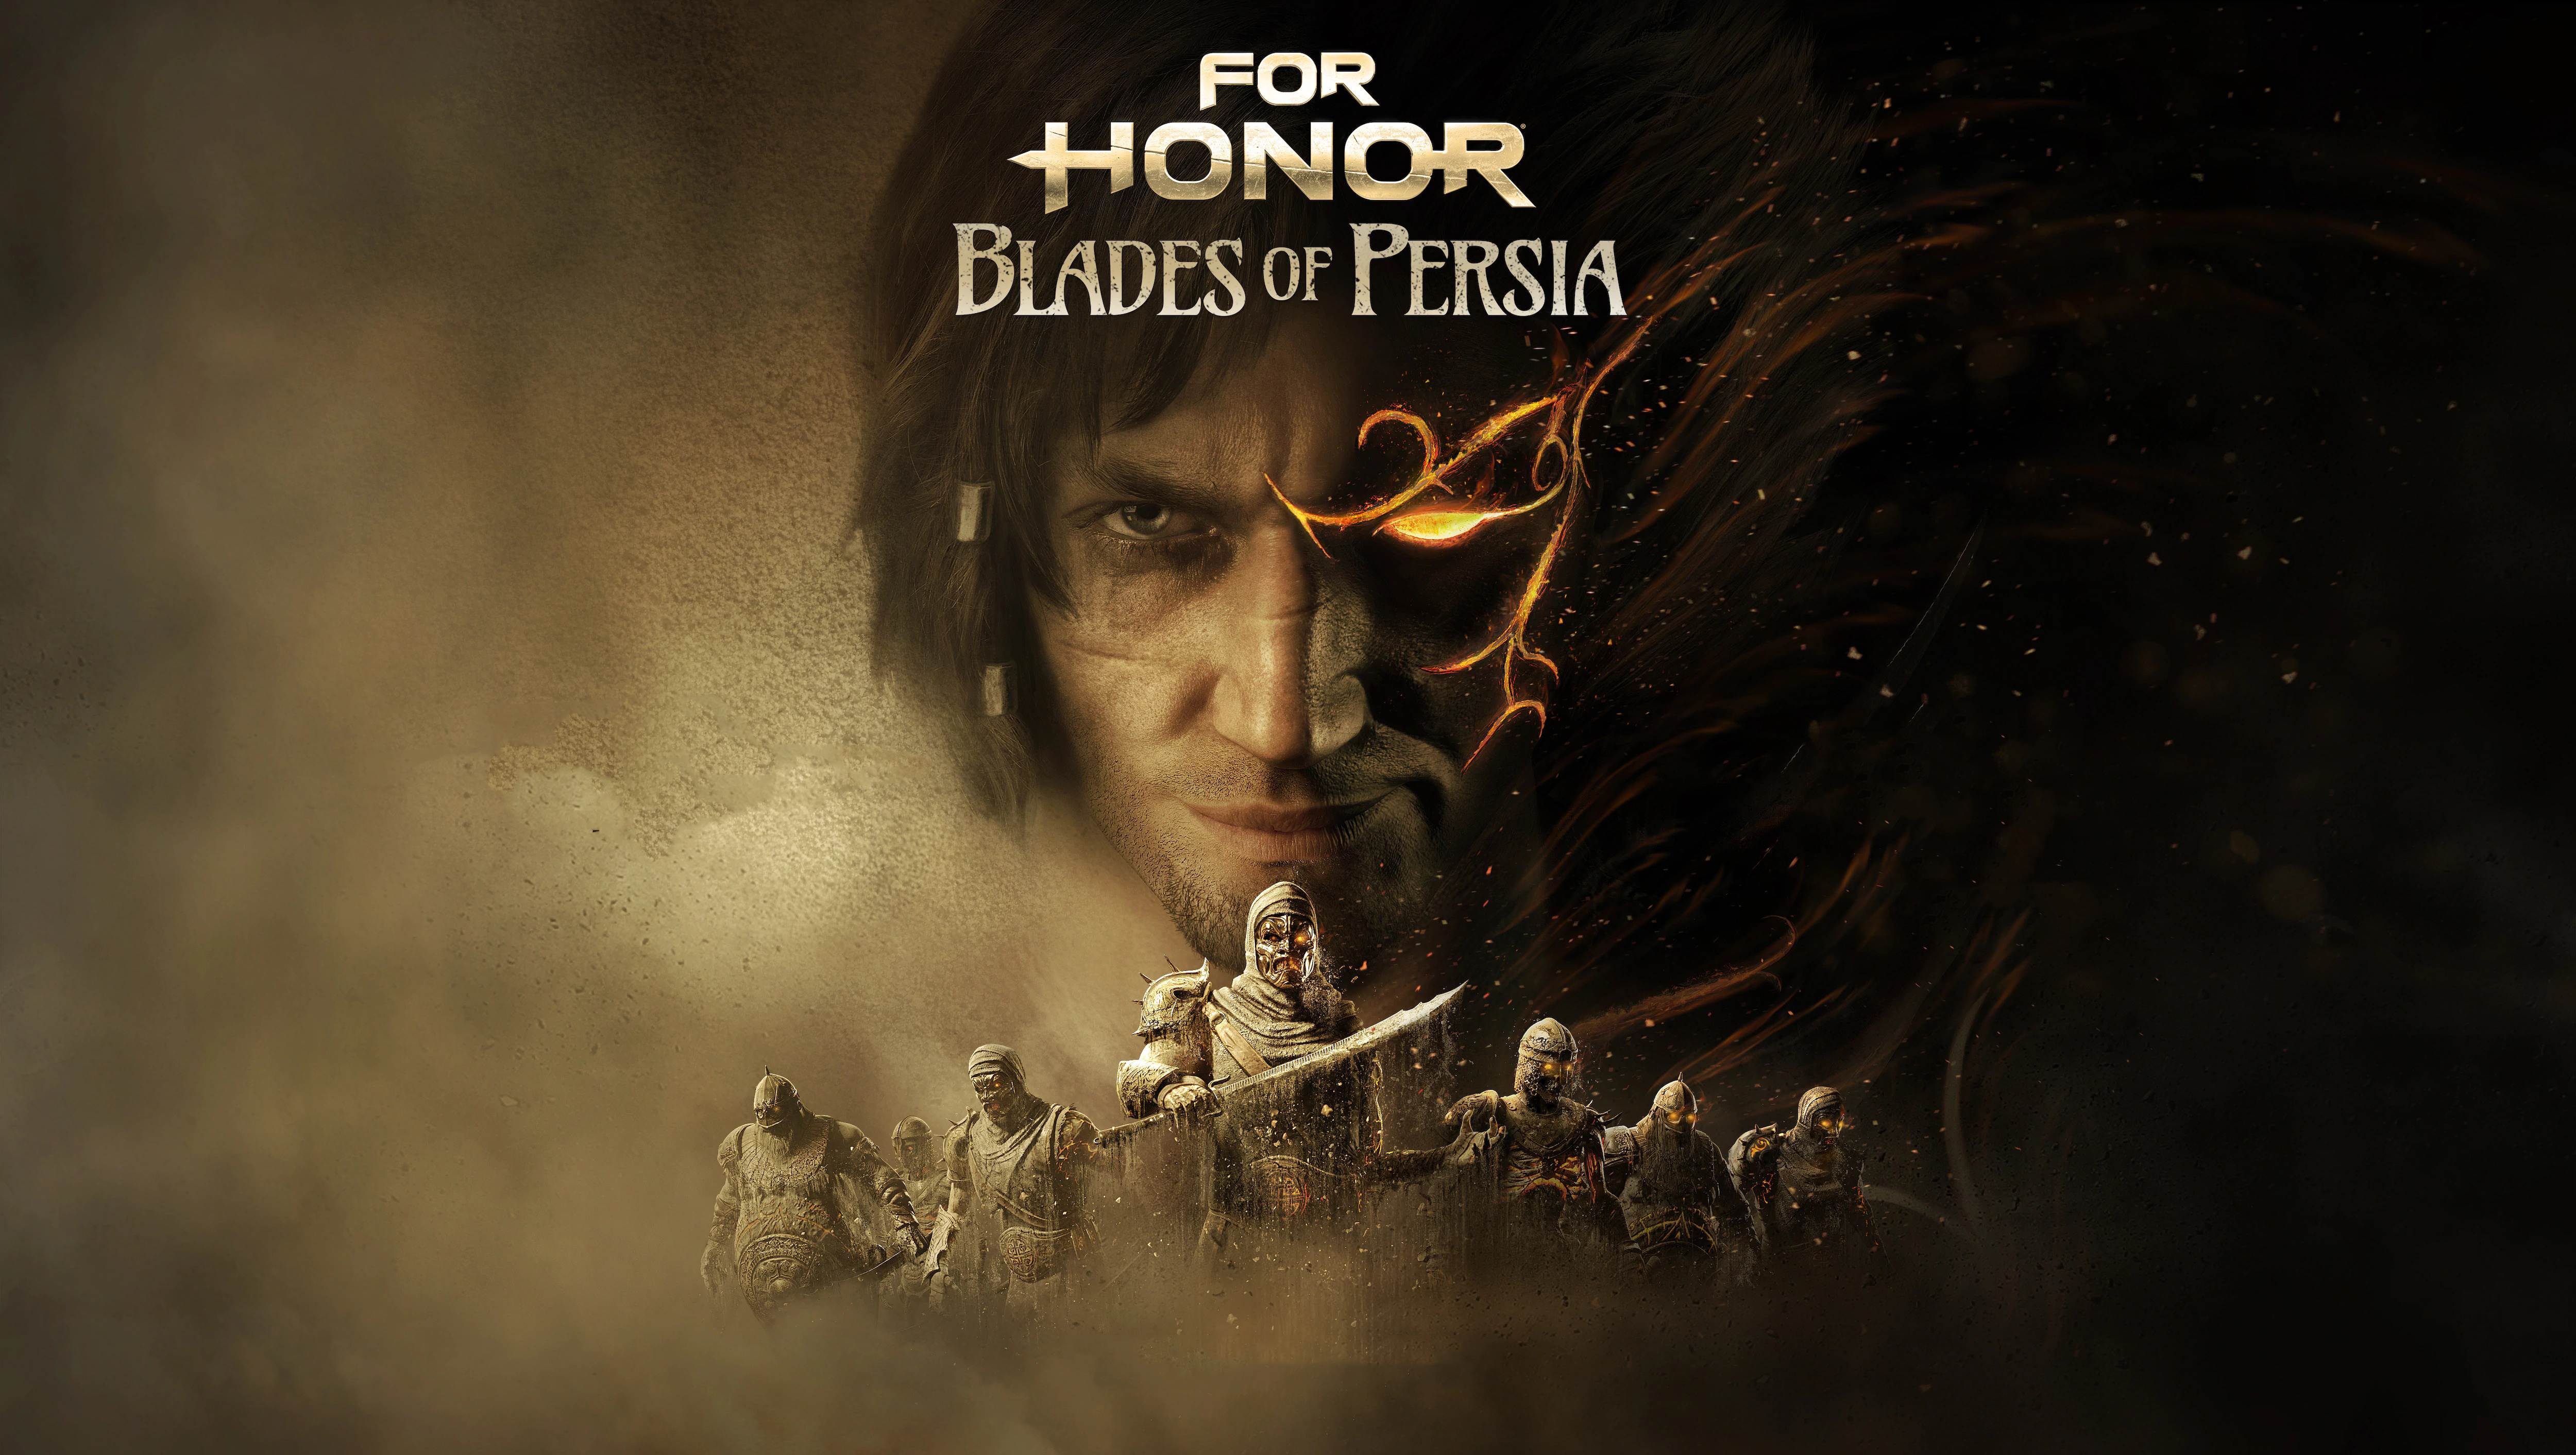 prince of persia for honor 1589580612 - Prince of Persia For Honor - Prince of Persia For Honor wallpapers, Prince of Persia For Honor 4k wallpapers